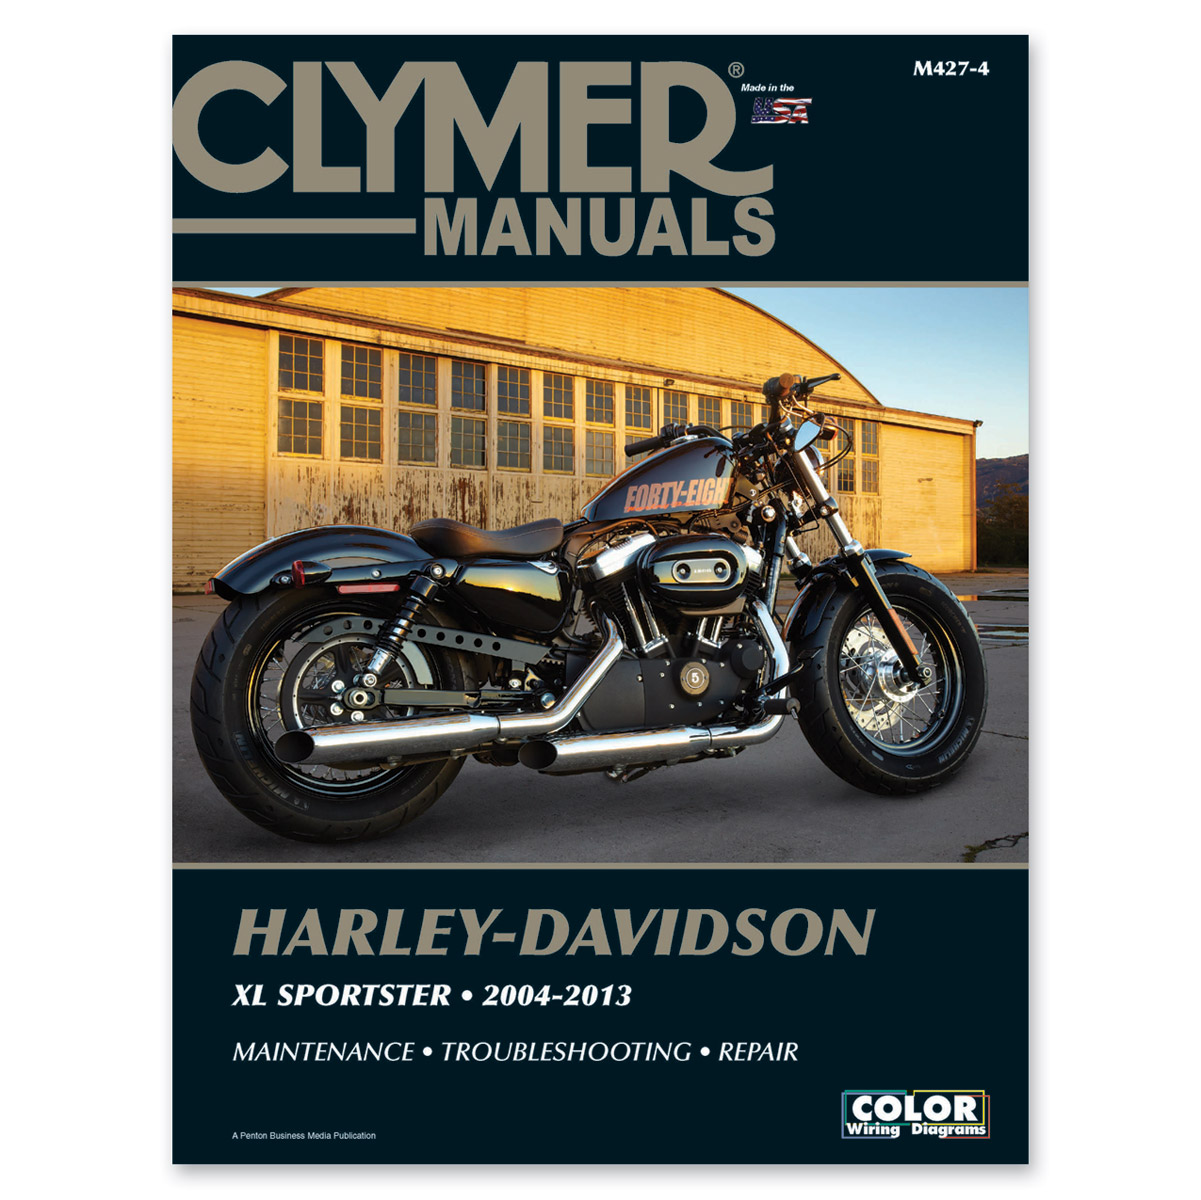 2007 sportster 1200l service manual open source user manual u2022 rh dramatic varieties com 2007 harley davidson flhtcu service manual 2007 harley davidson touring service manual